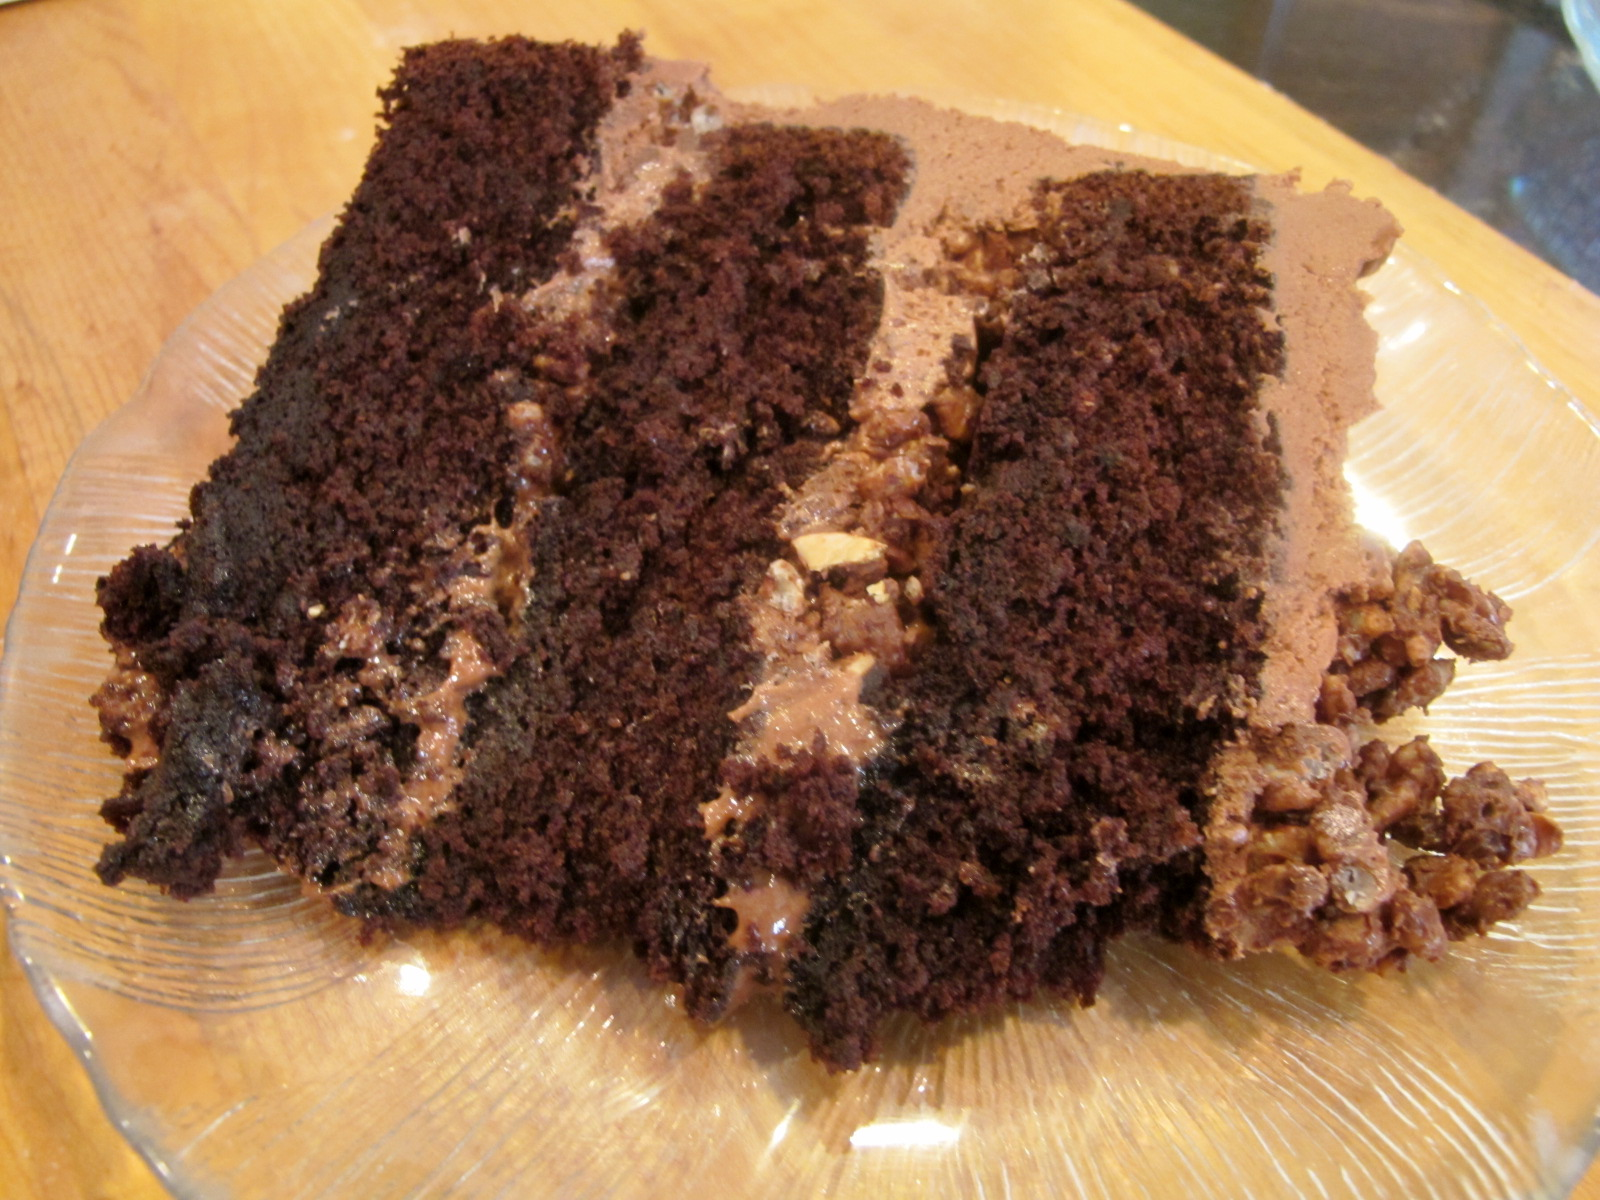 ... Strings: Whole-grain Challah & Devil's Food Cake with Hazelnut Cr...